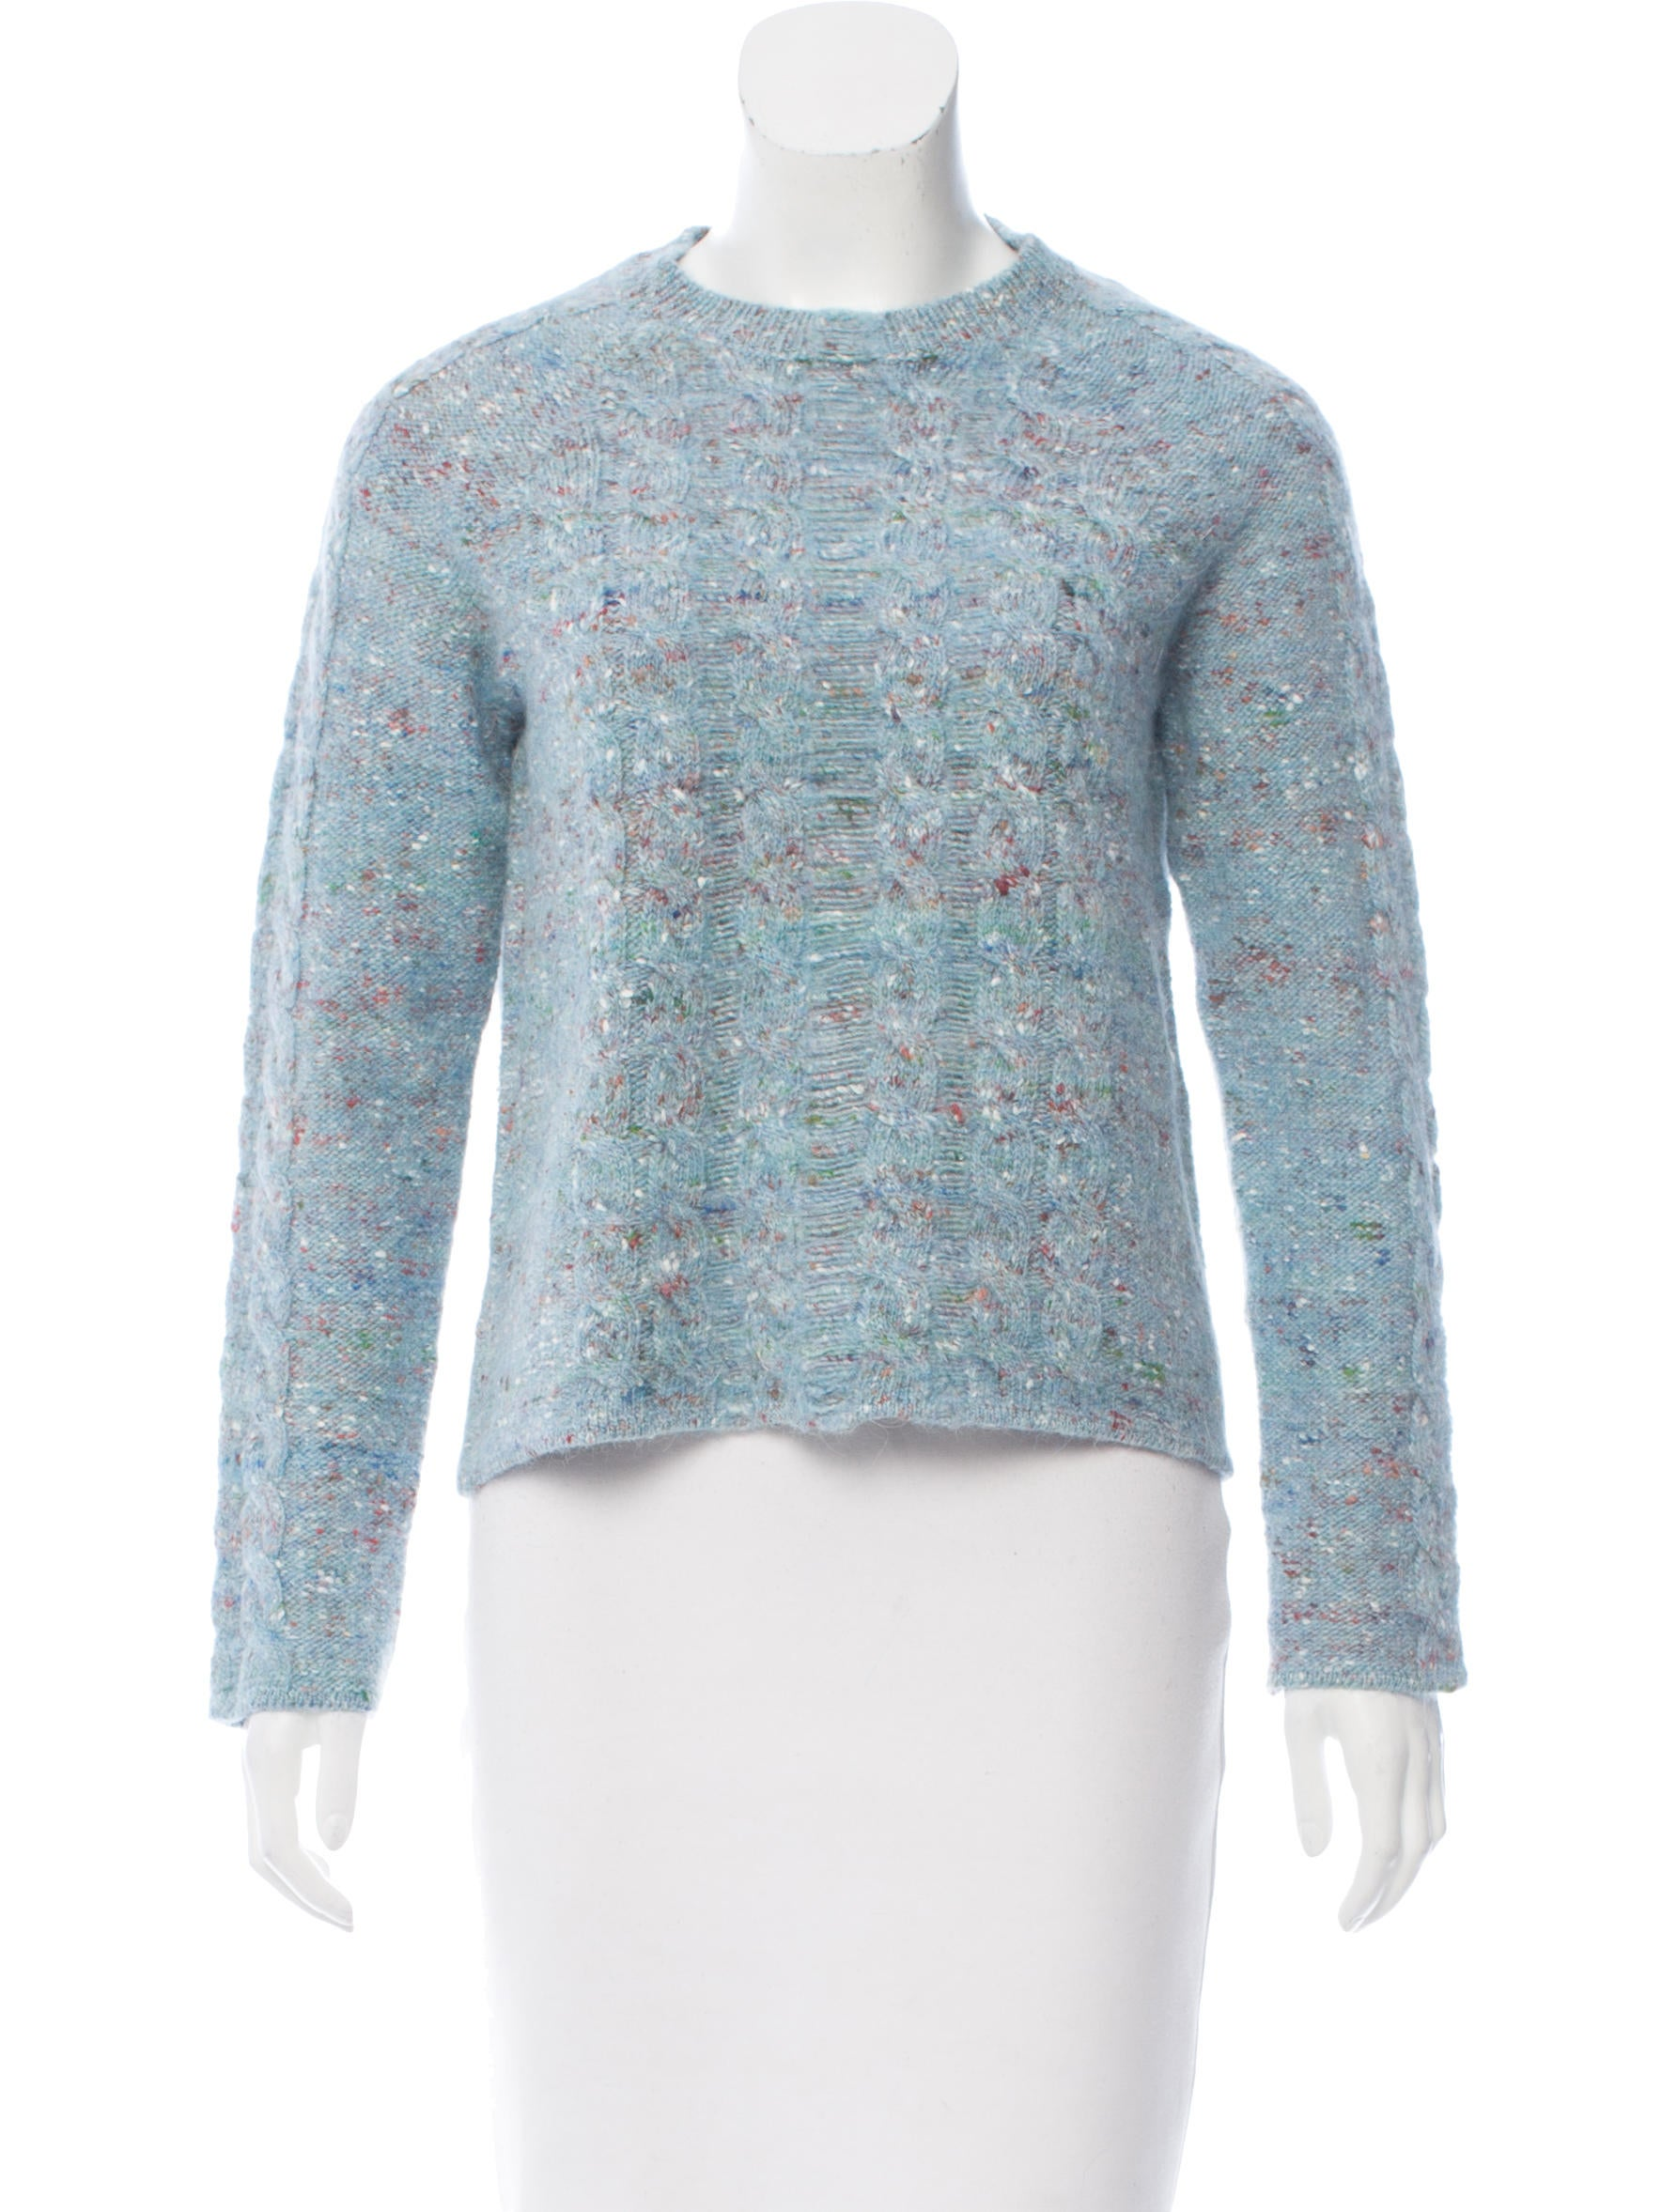 Raquel allegra merino wool m lange sweater clothing for Merino wool shirt womens